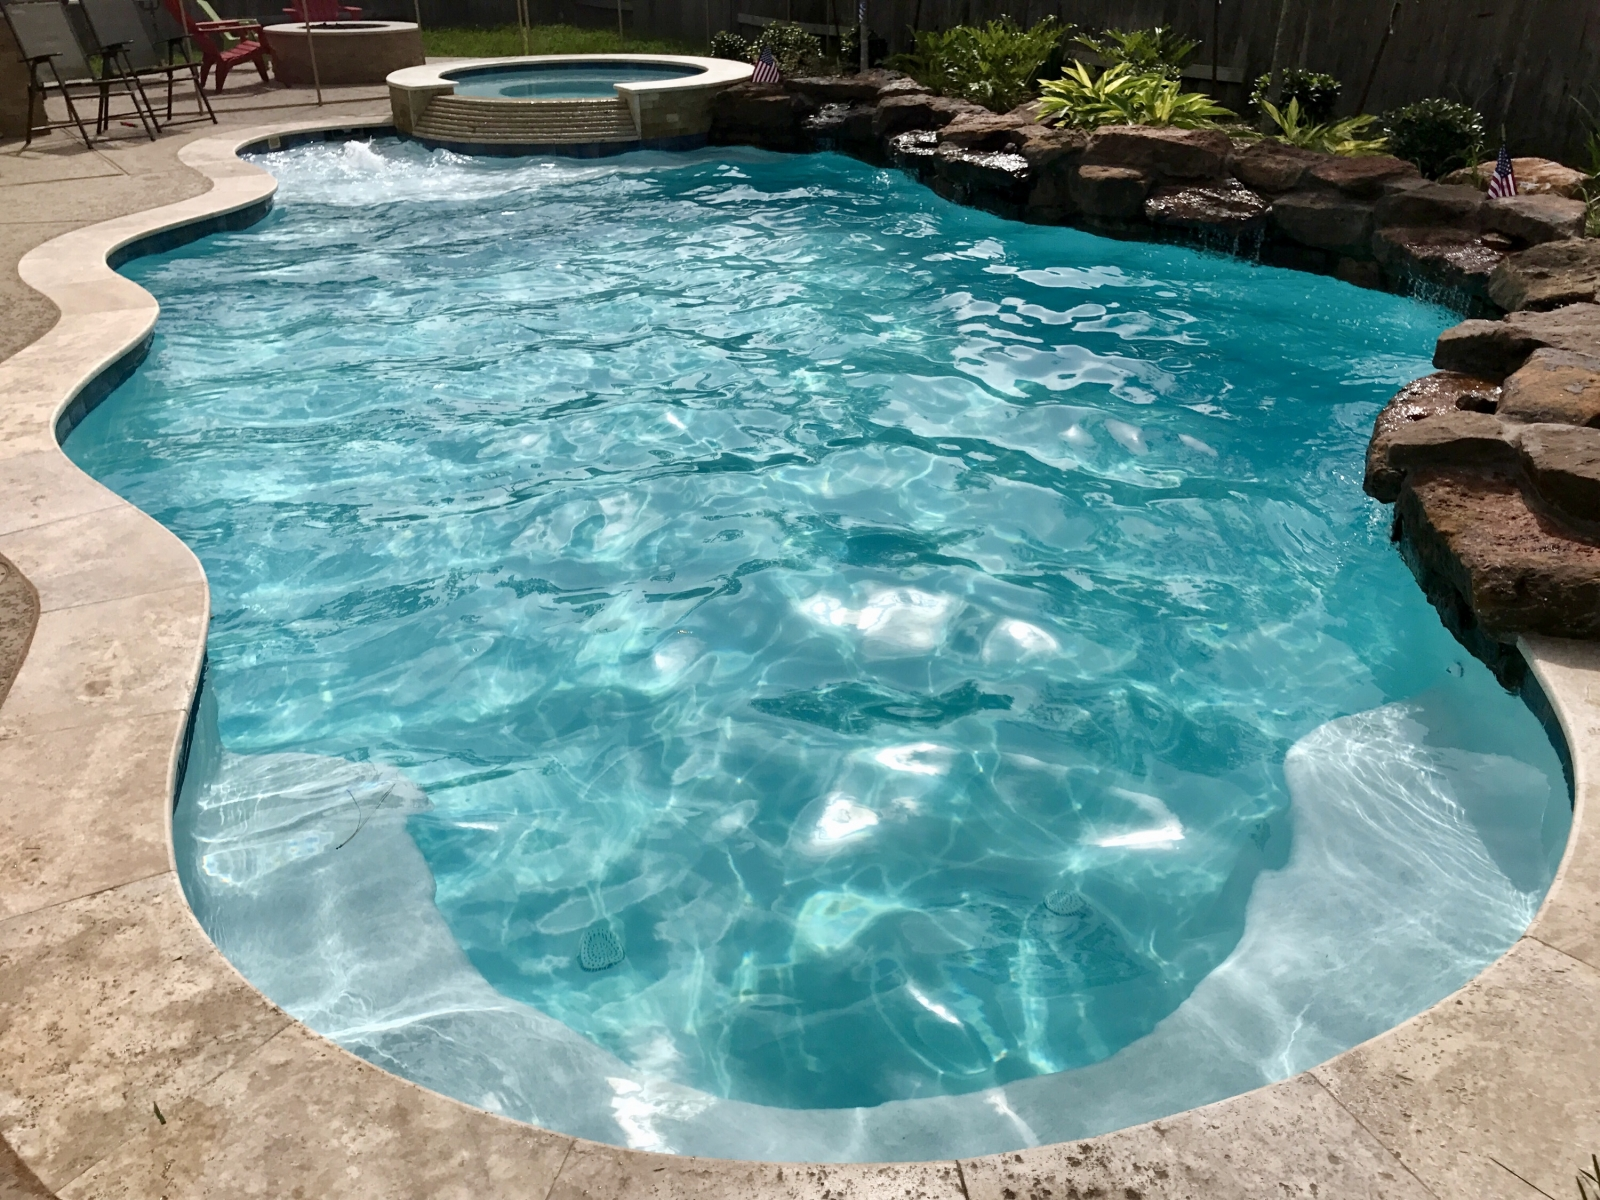 Freeform Pool With Tanning Ledge, Bubblers, & Spa